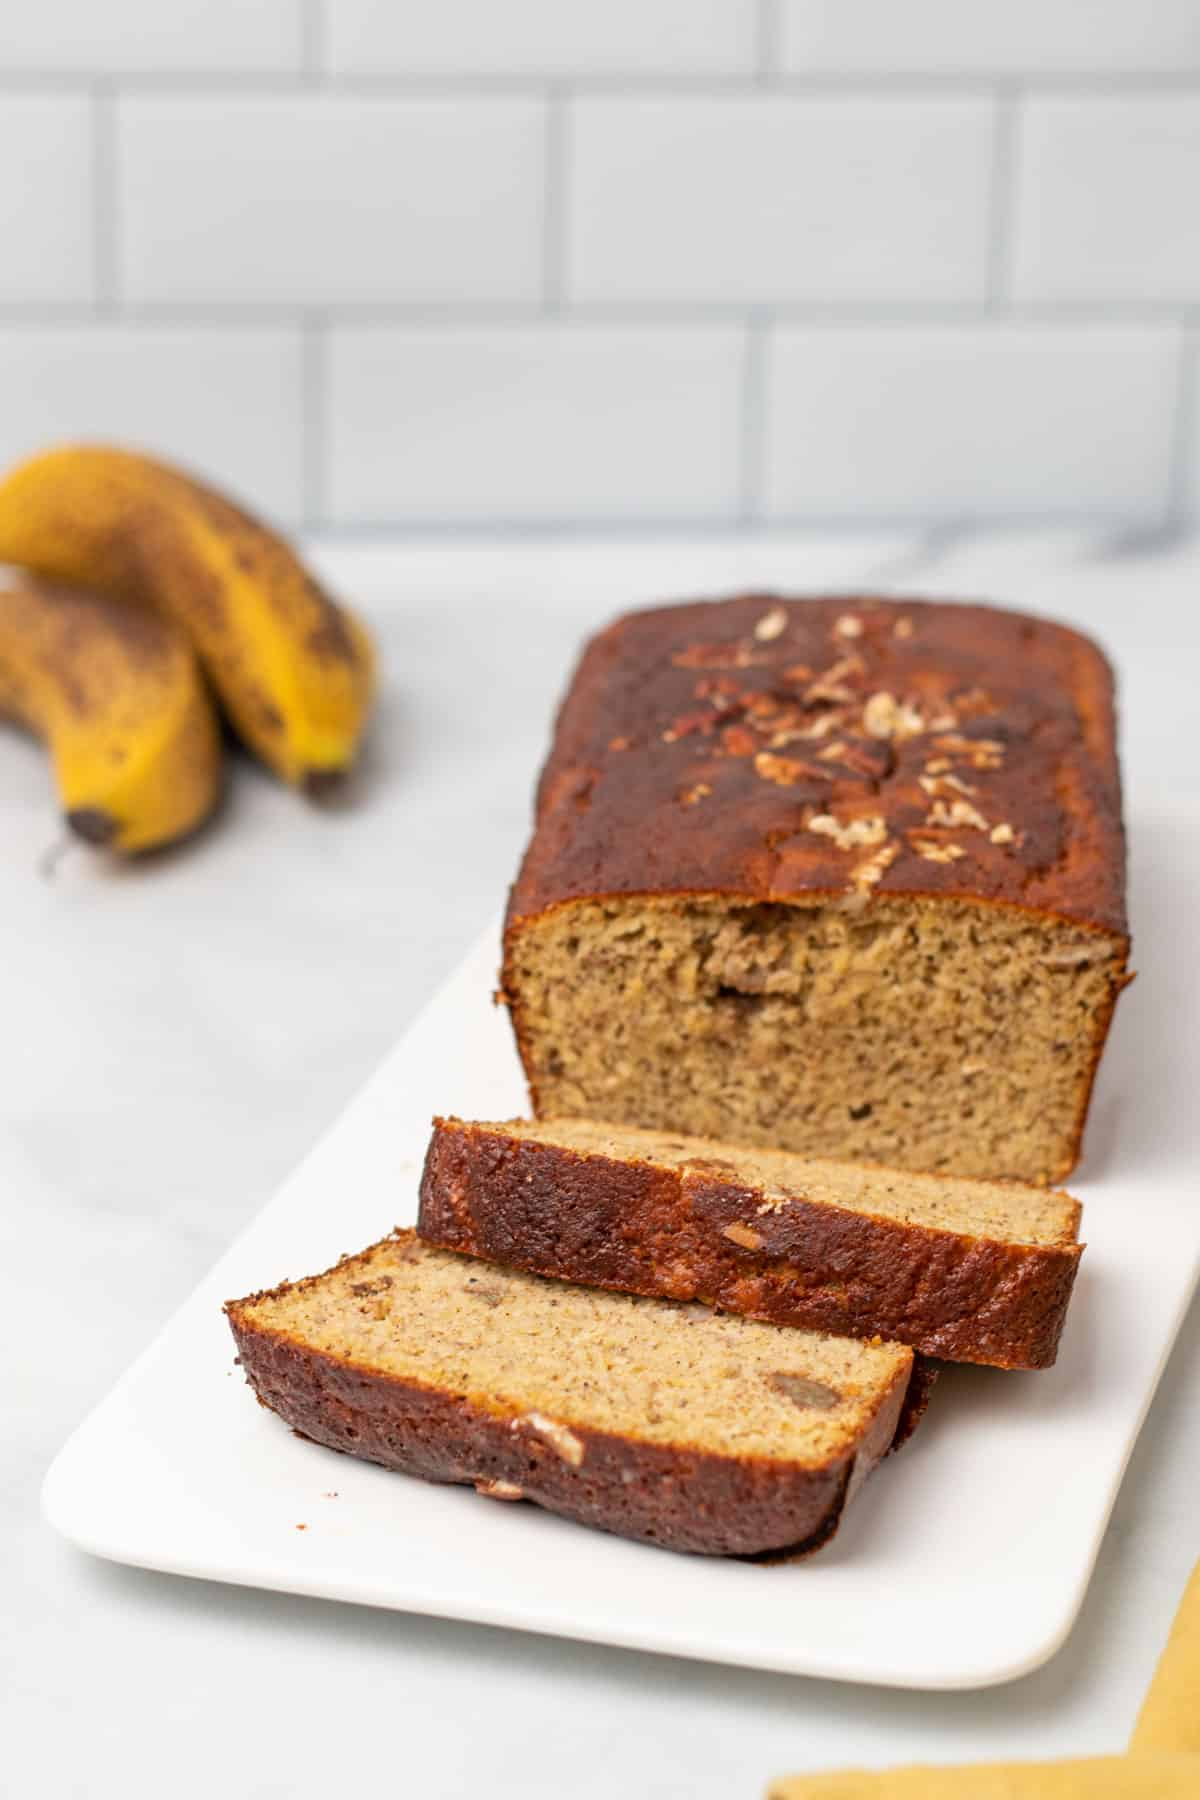 Loaf of banana bread with 2 slices cut